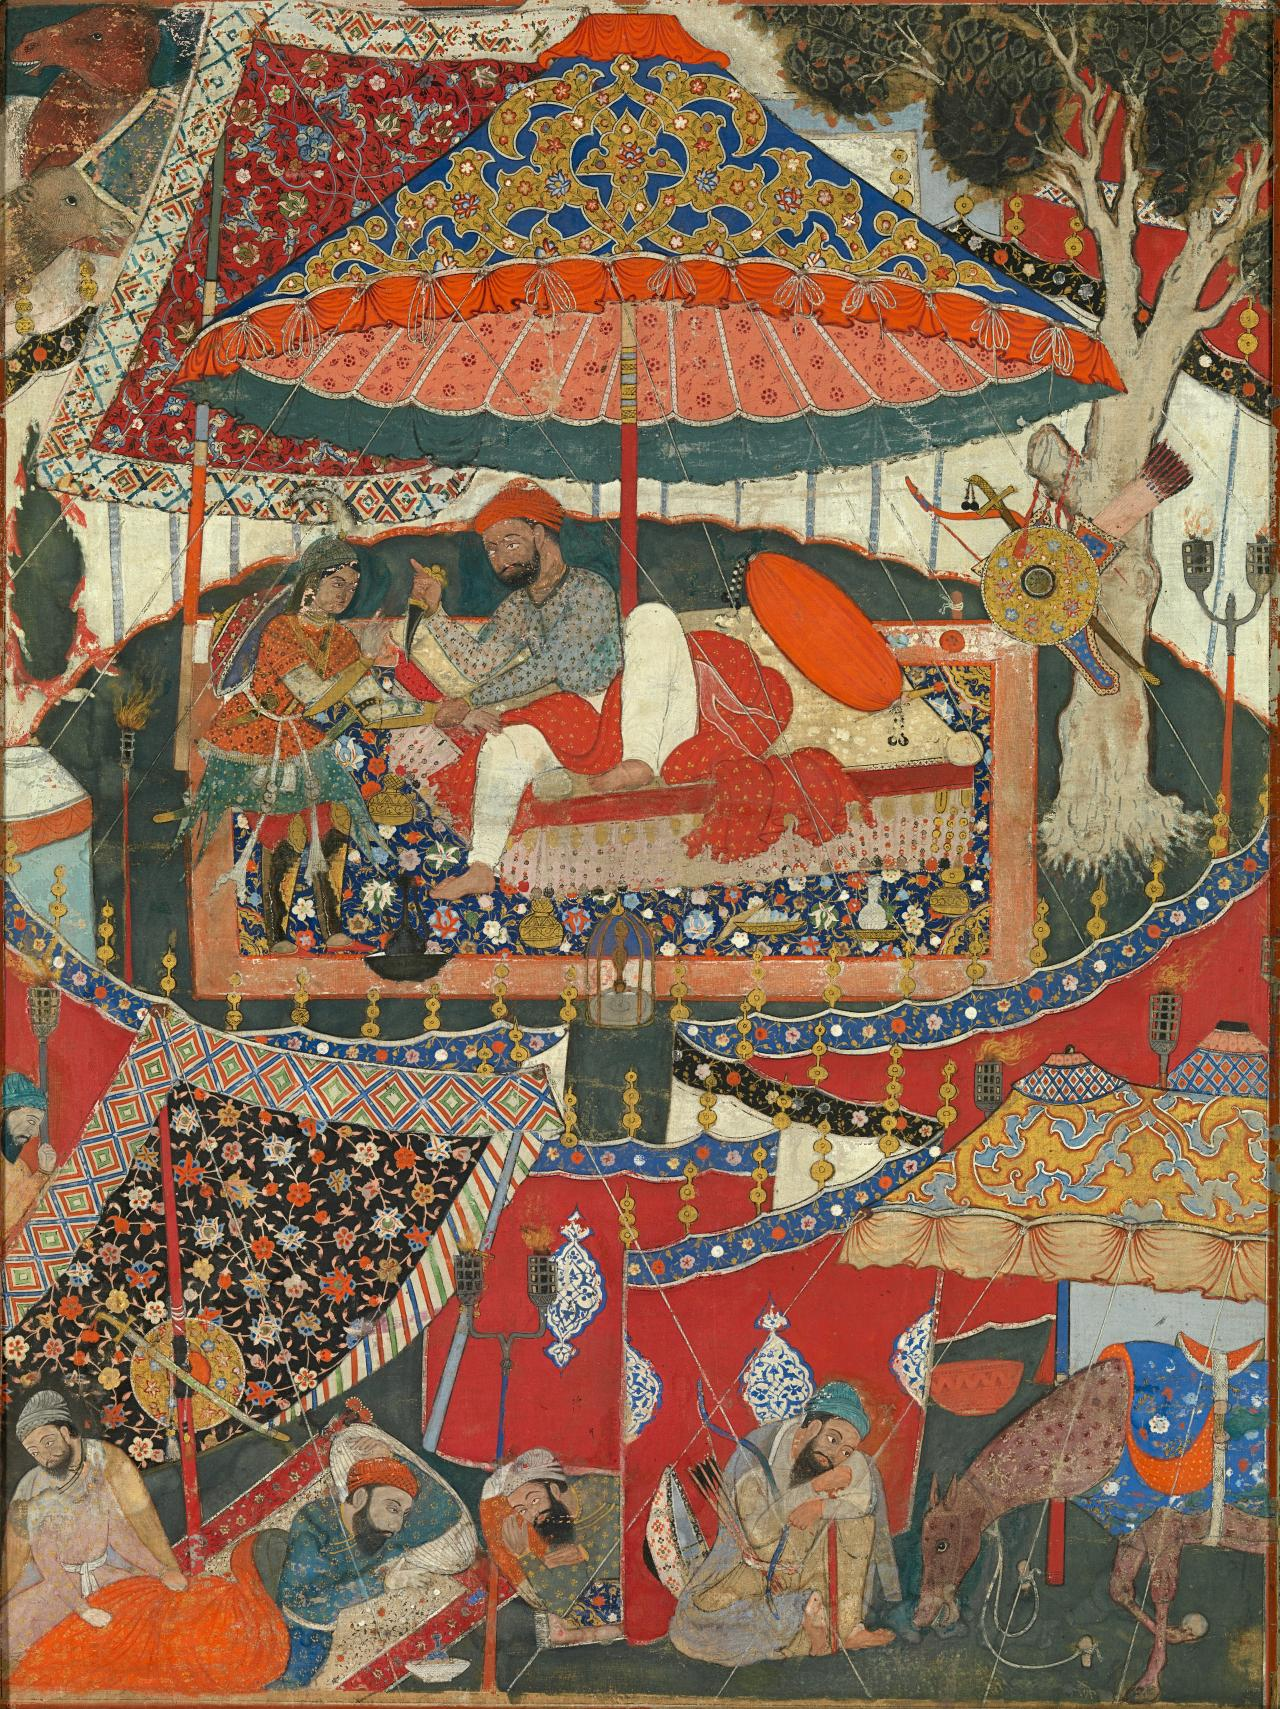 mughal painting under akbar the melbourne hamza nama and akbar fig 1 hamza disarming a byzantine princess